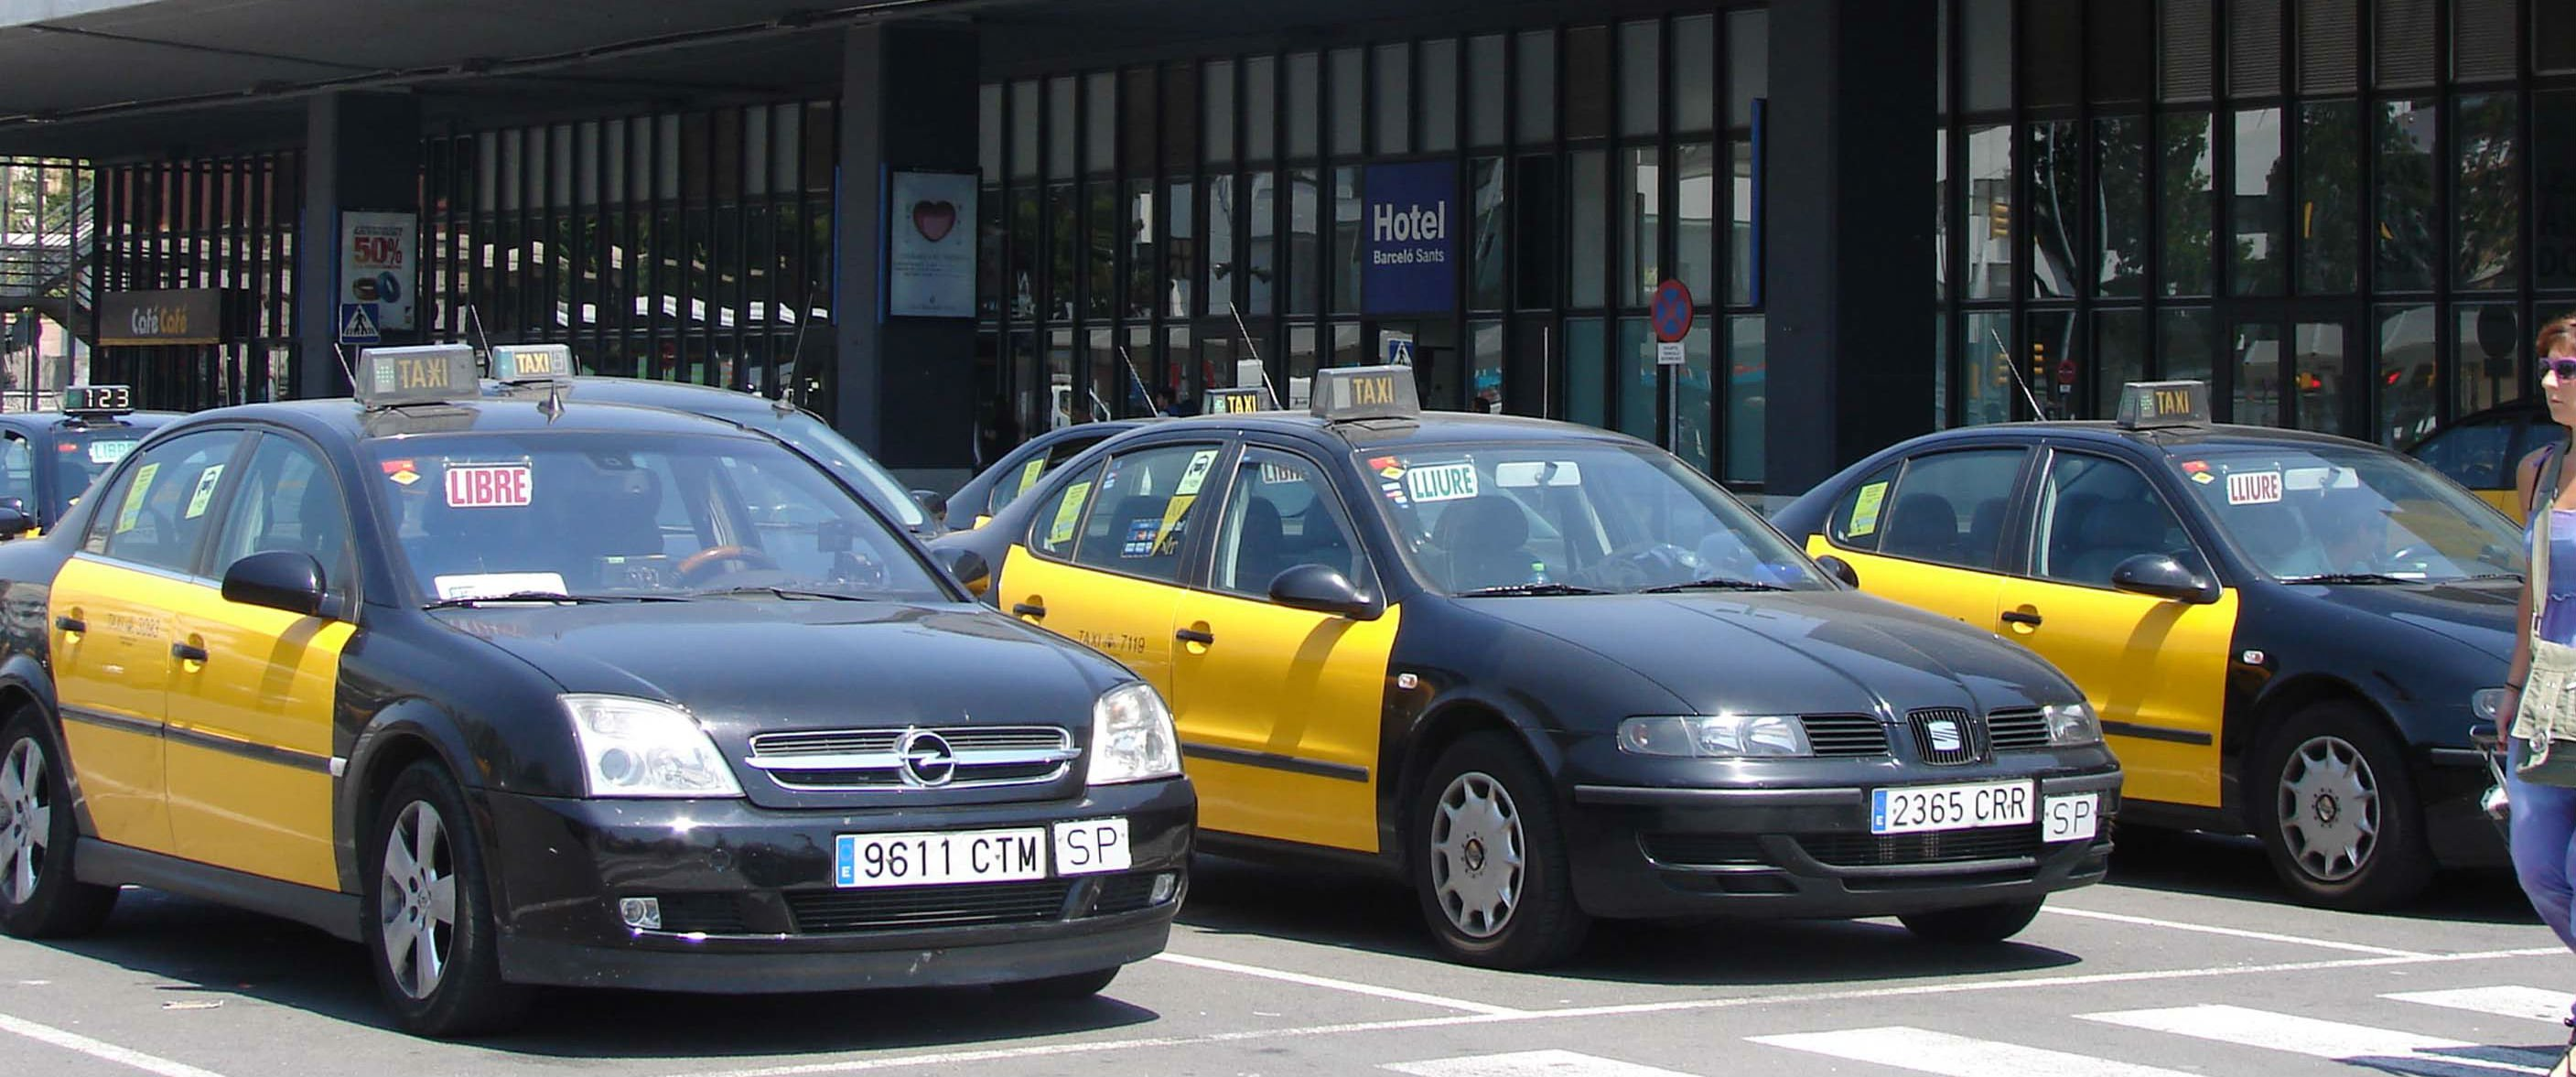 Taxis en la estación de Sants / STAC